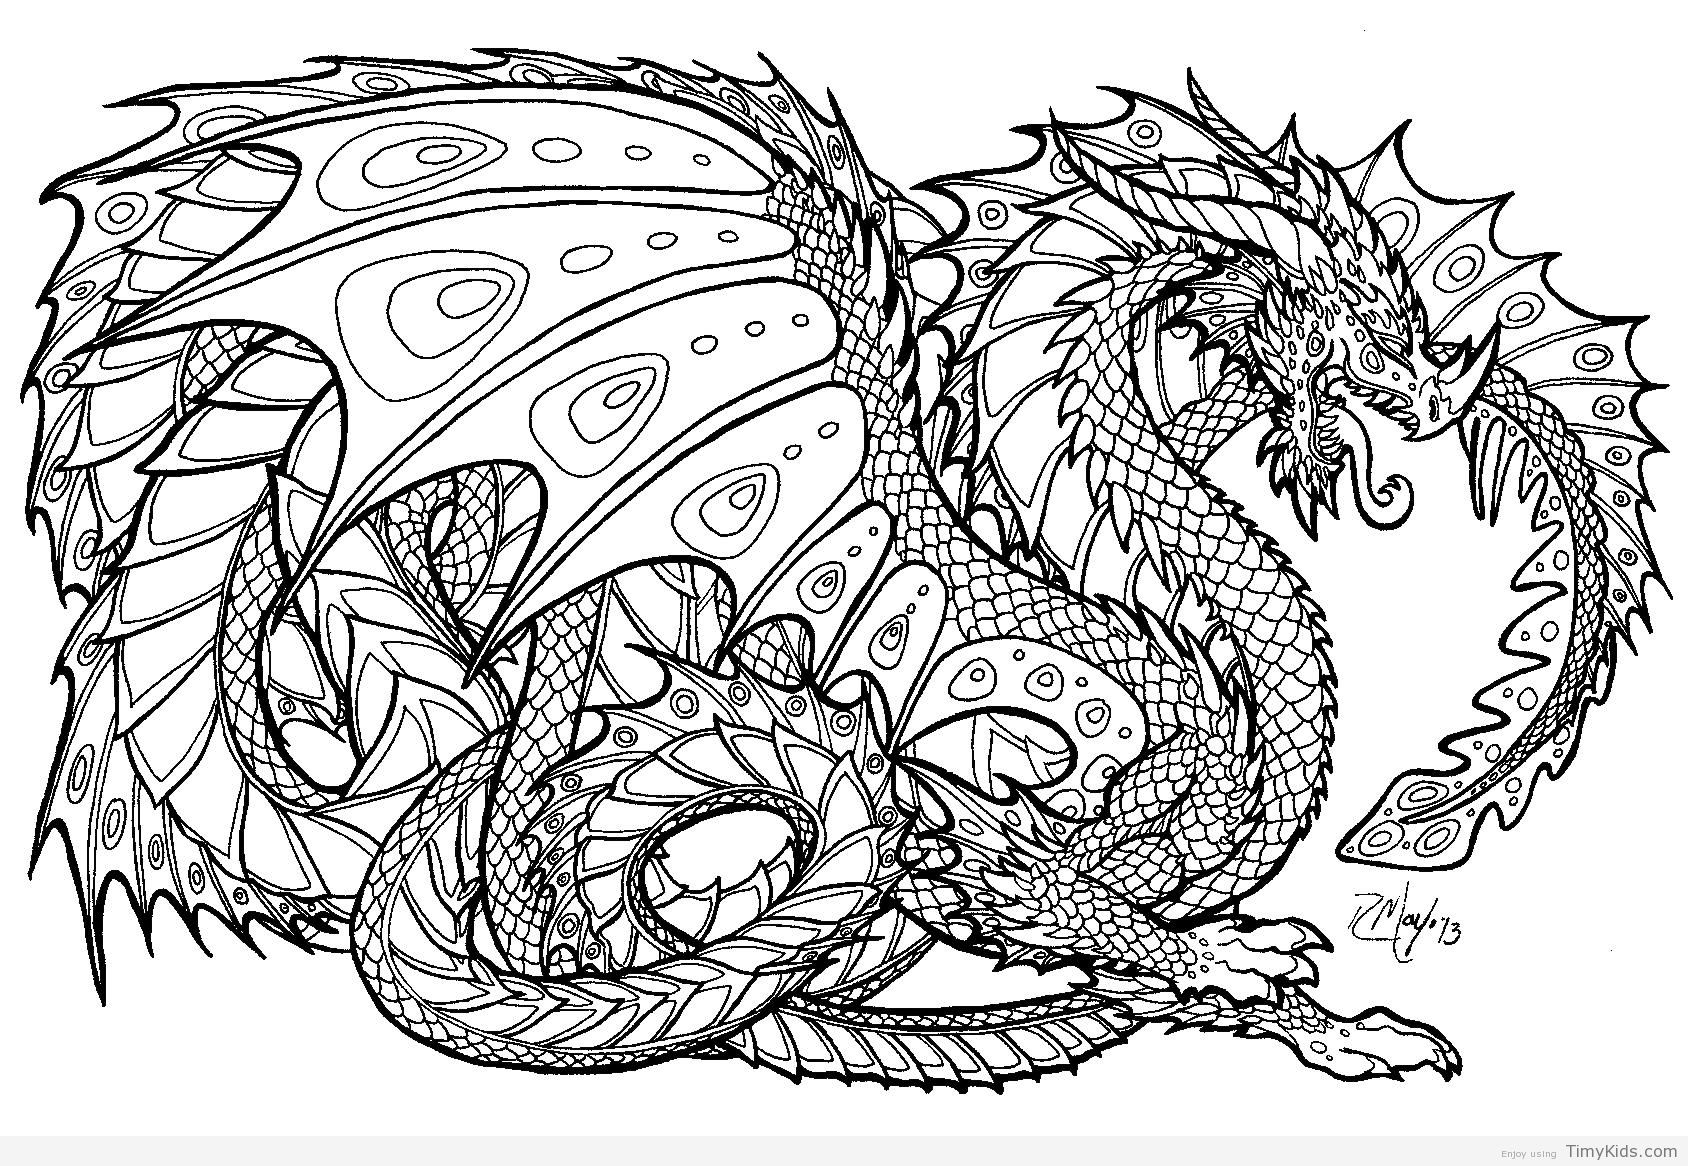 Ausmalbilder Fantasie Drachen : Http Timykids Com Free Printable Dragon Coloring Pages Html